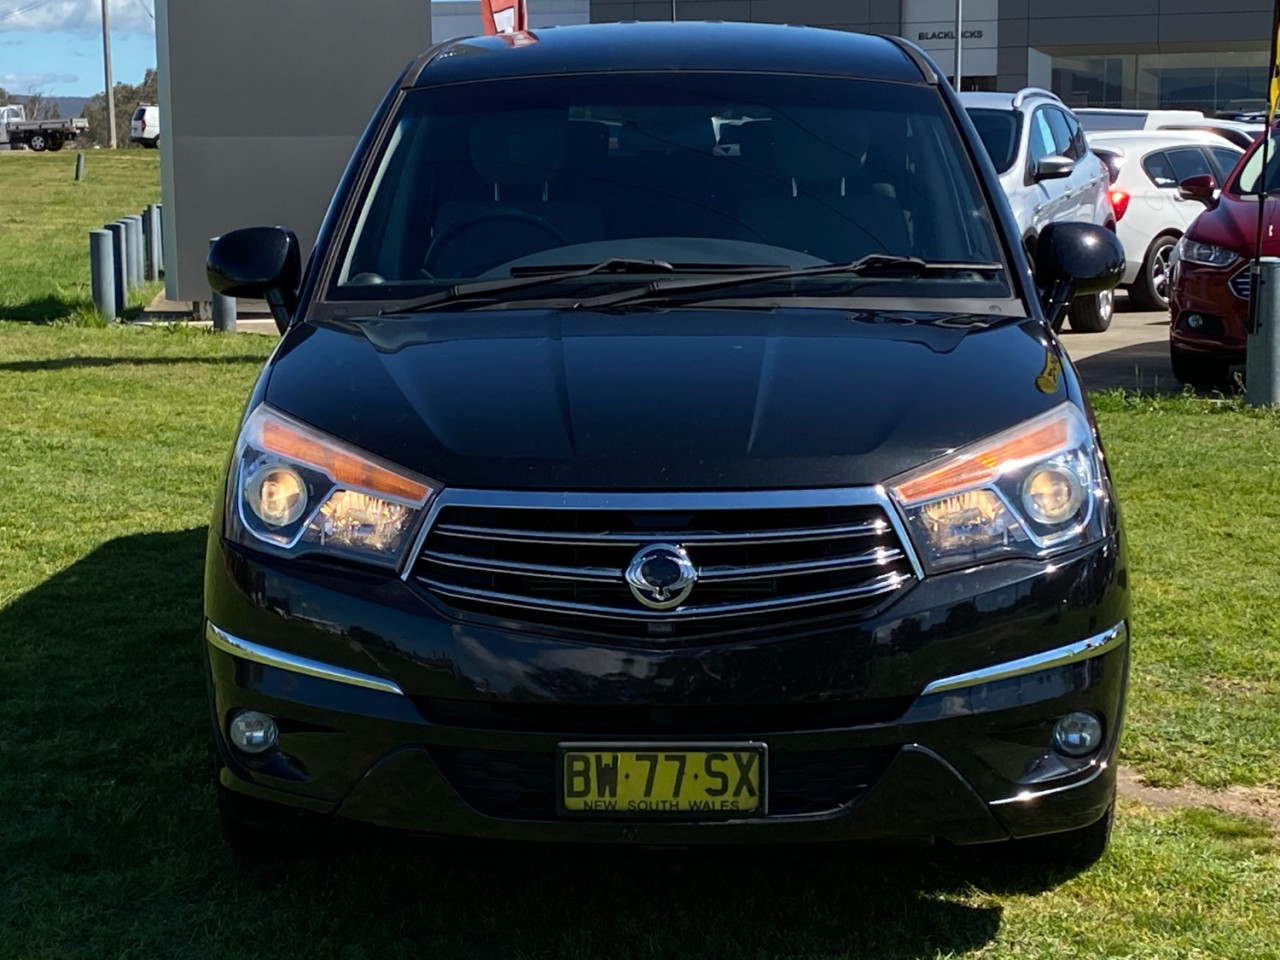 2013 SsangYong Stavic A100 MY13 Wagon Image 24